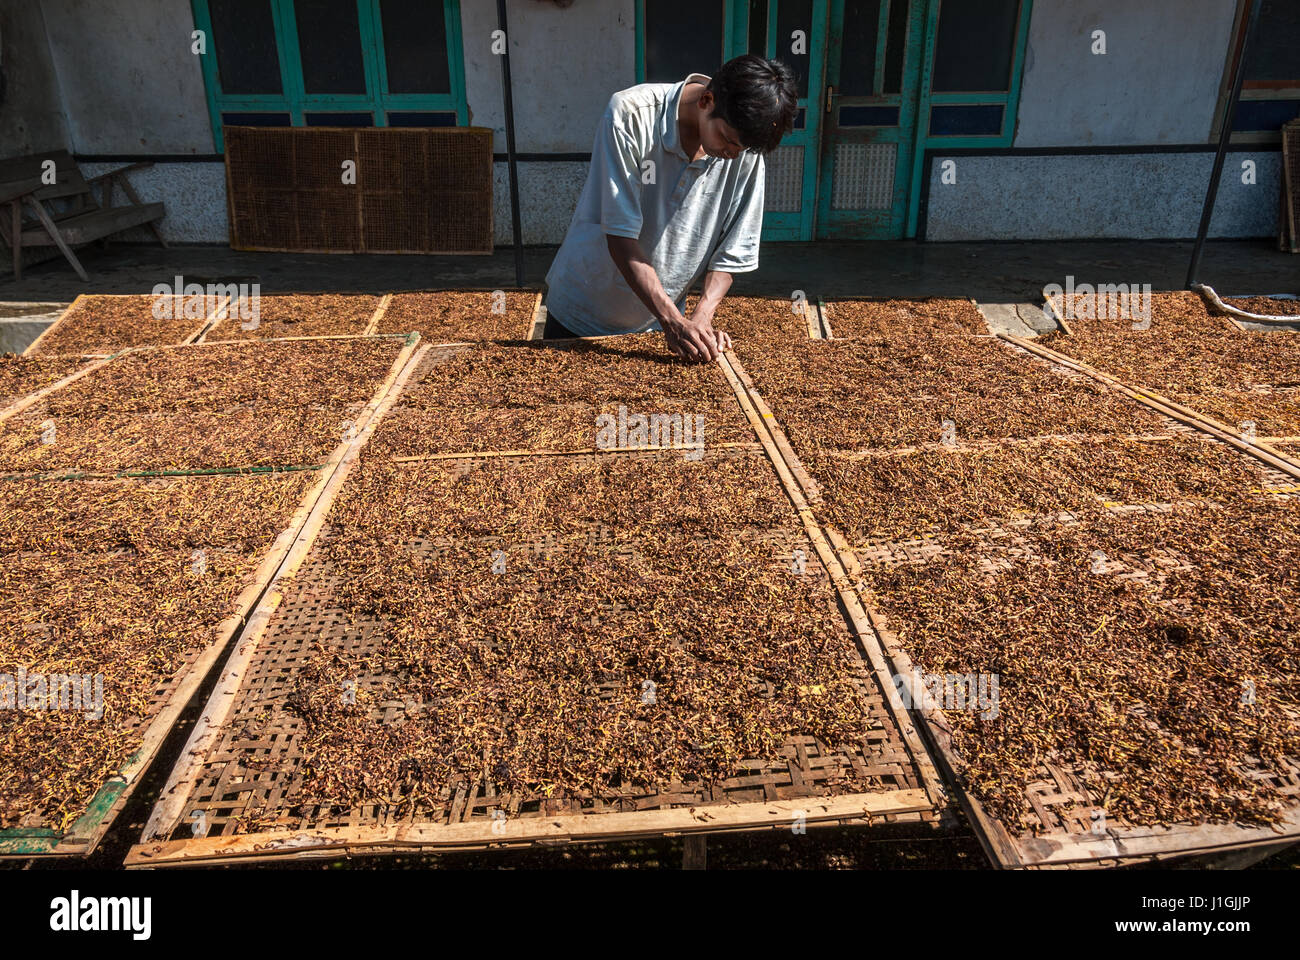 Man drying tobacco leaves in the sun in rural Java, Indonesia. © Reynold Sumayku Stock Photo